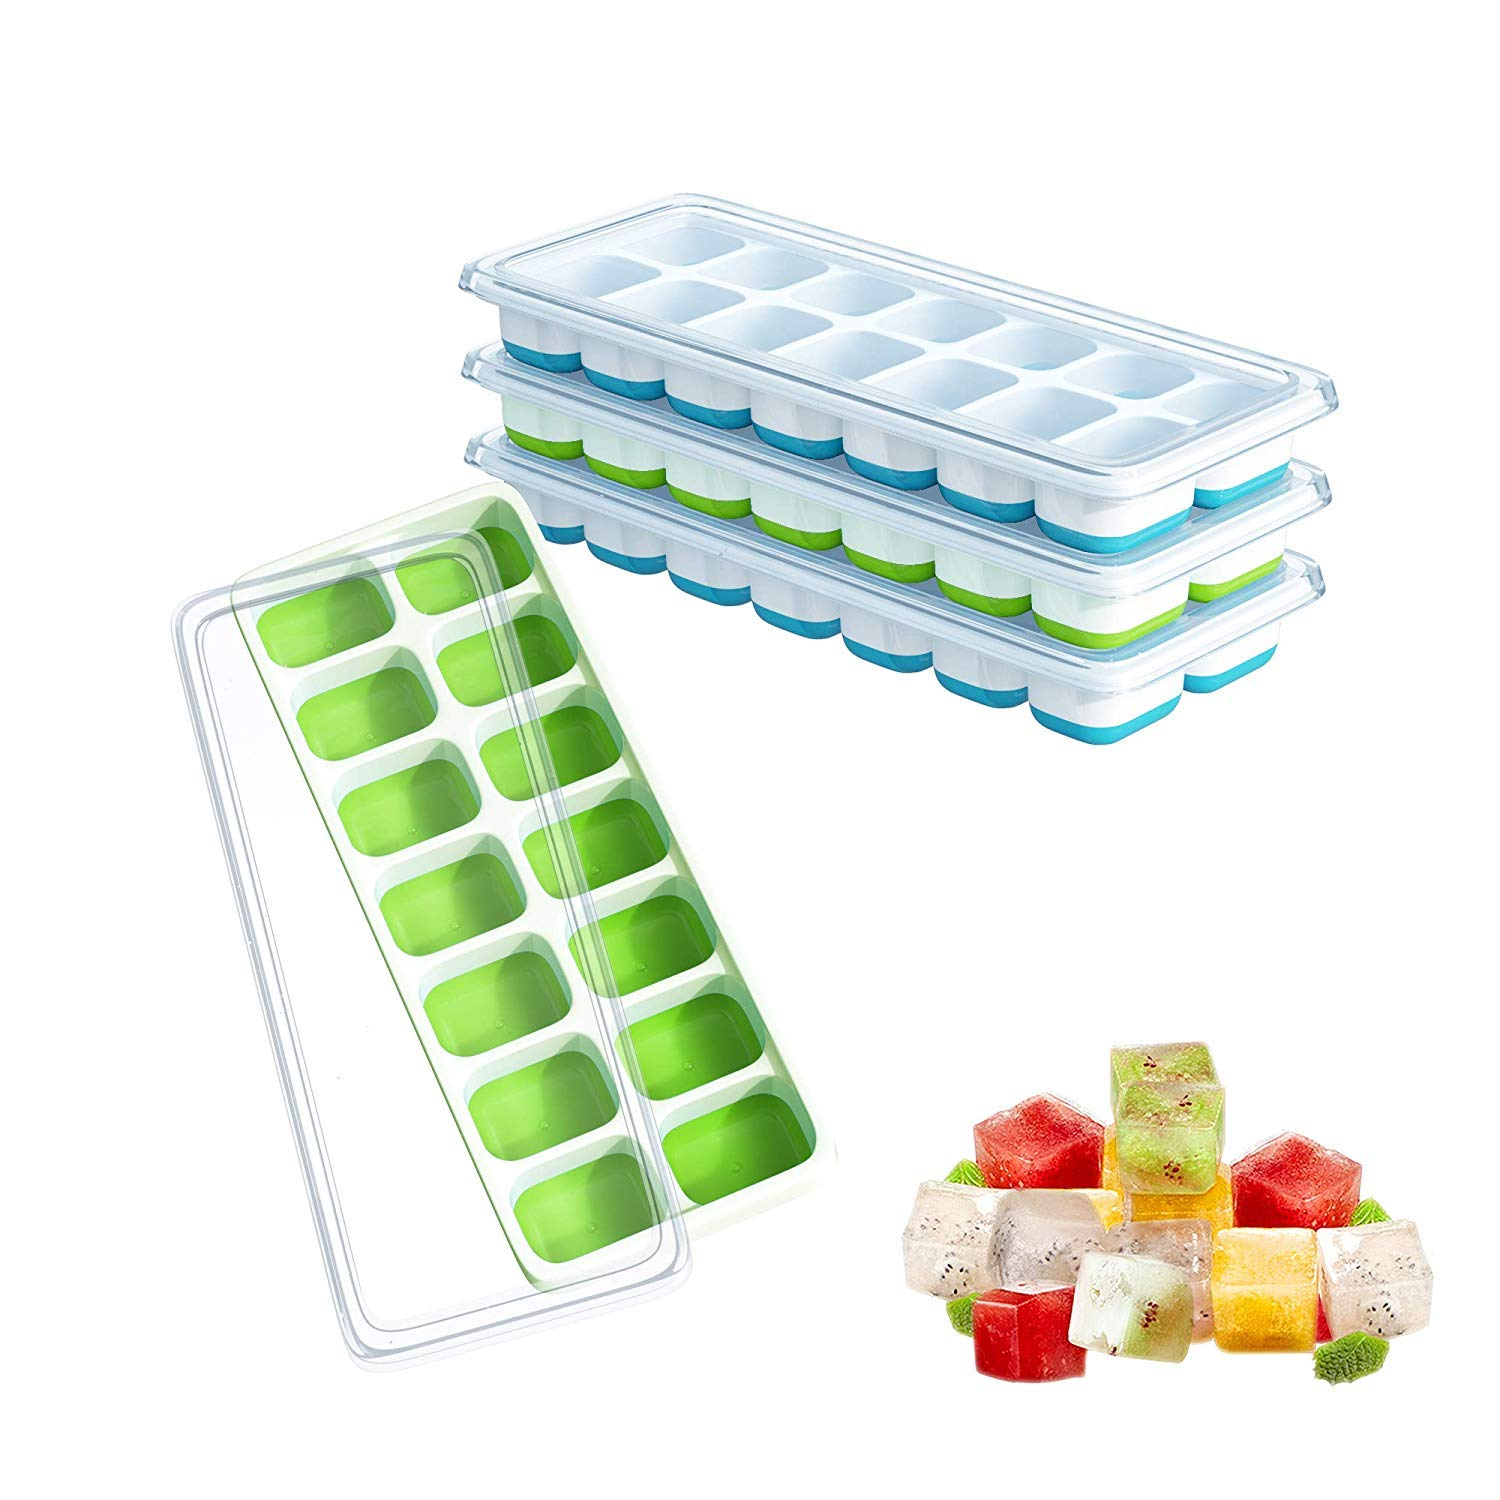 Ouddy 4 Pack Ice Cube Trays with Lid, Silicone Ice Cube Molds, 14-Ice Trays Can Make 56 Ice Cubes, Stackable Durable (Blue & Green) by Ouddy